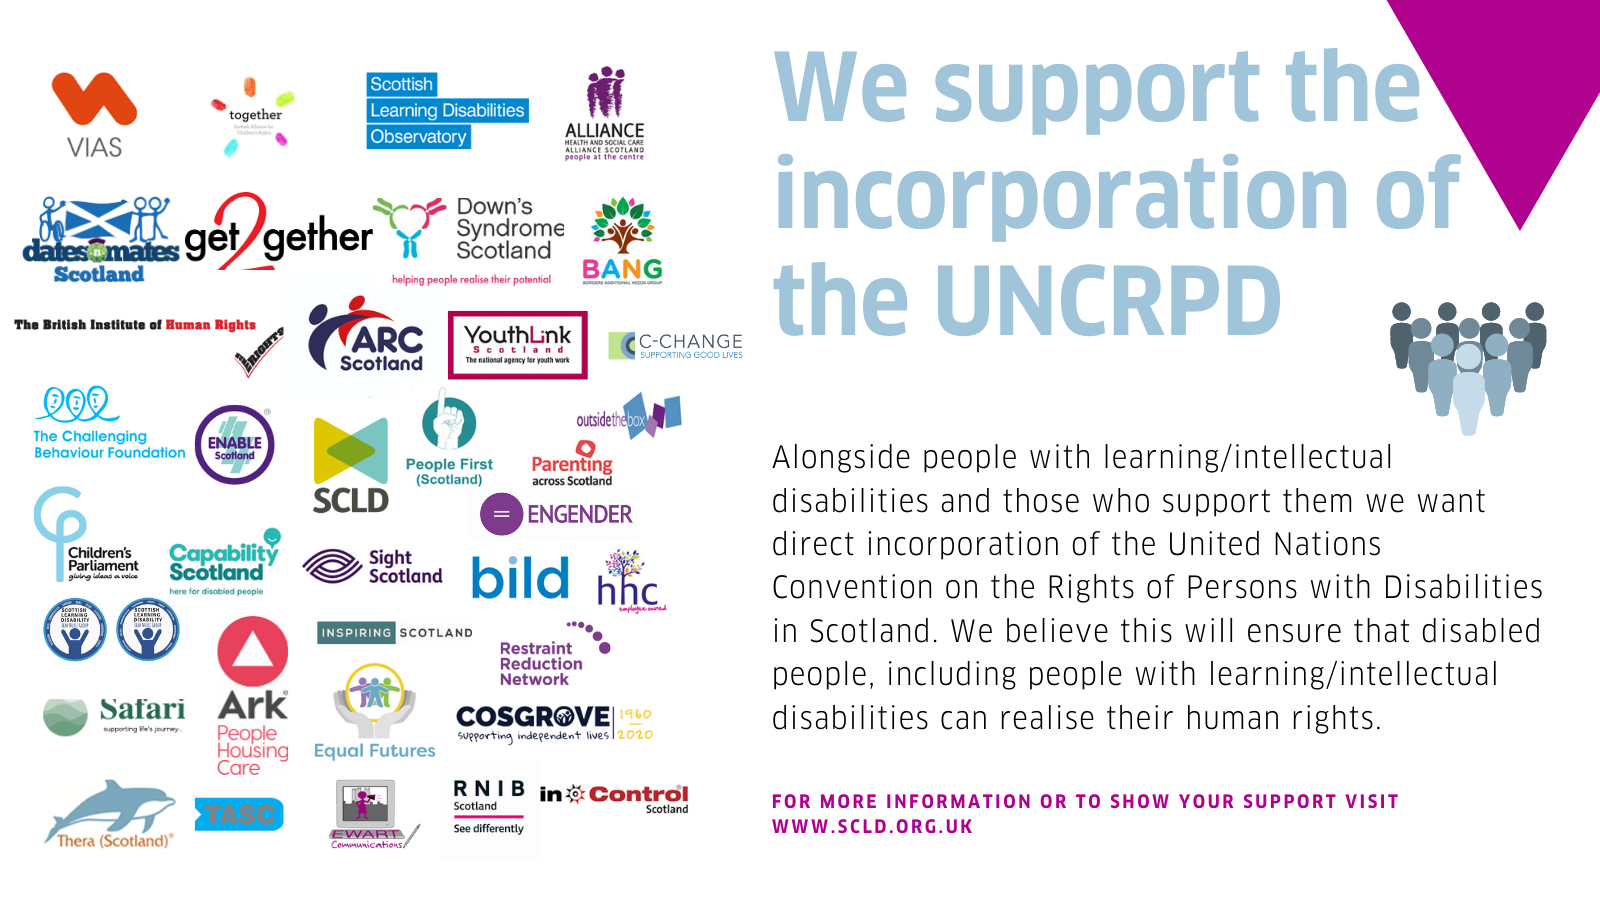 Text: 'We support the incorporation of the UNCRPD' with a list of organisations who have signed the position statement.